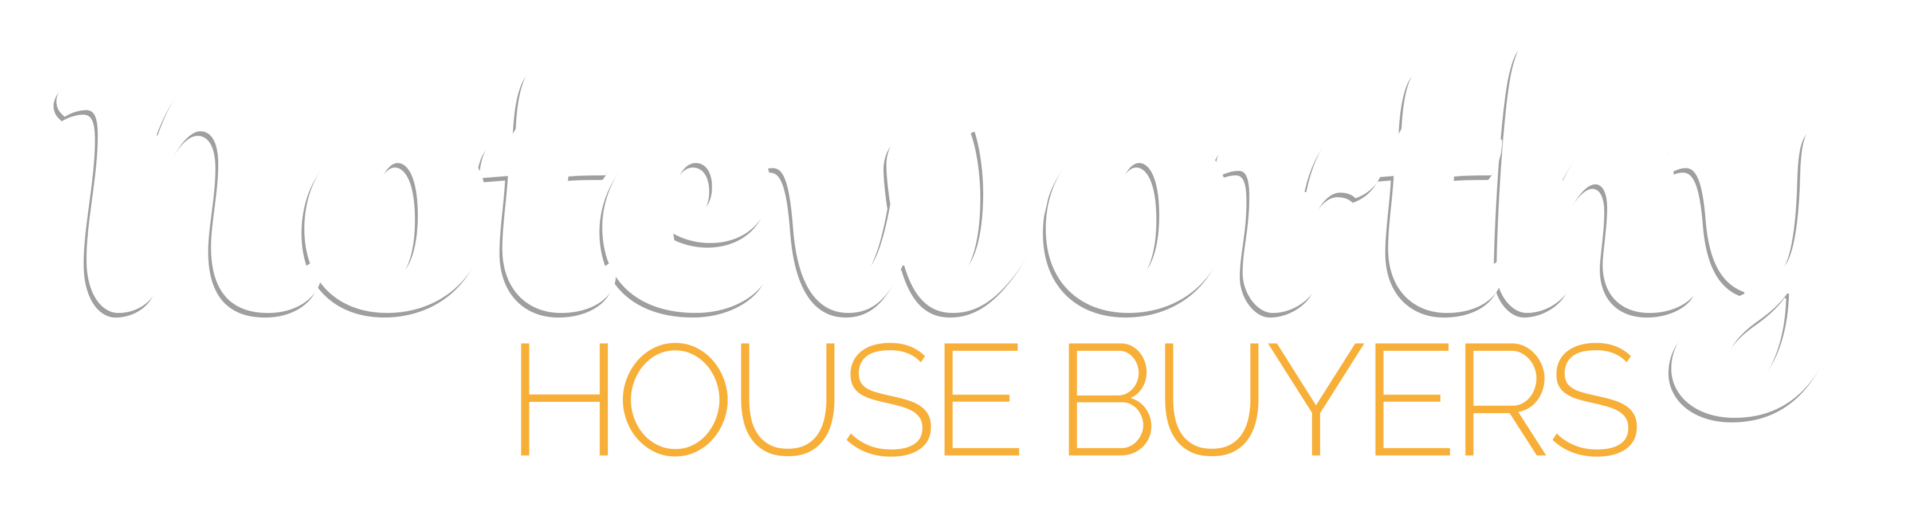 Noteworthy House Buyers  logo